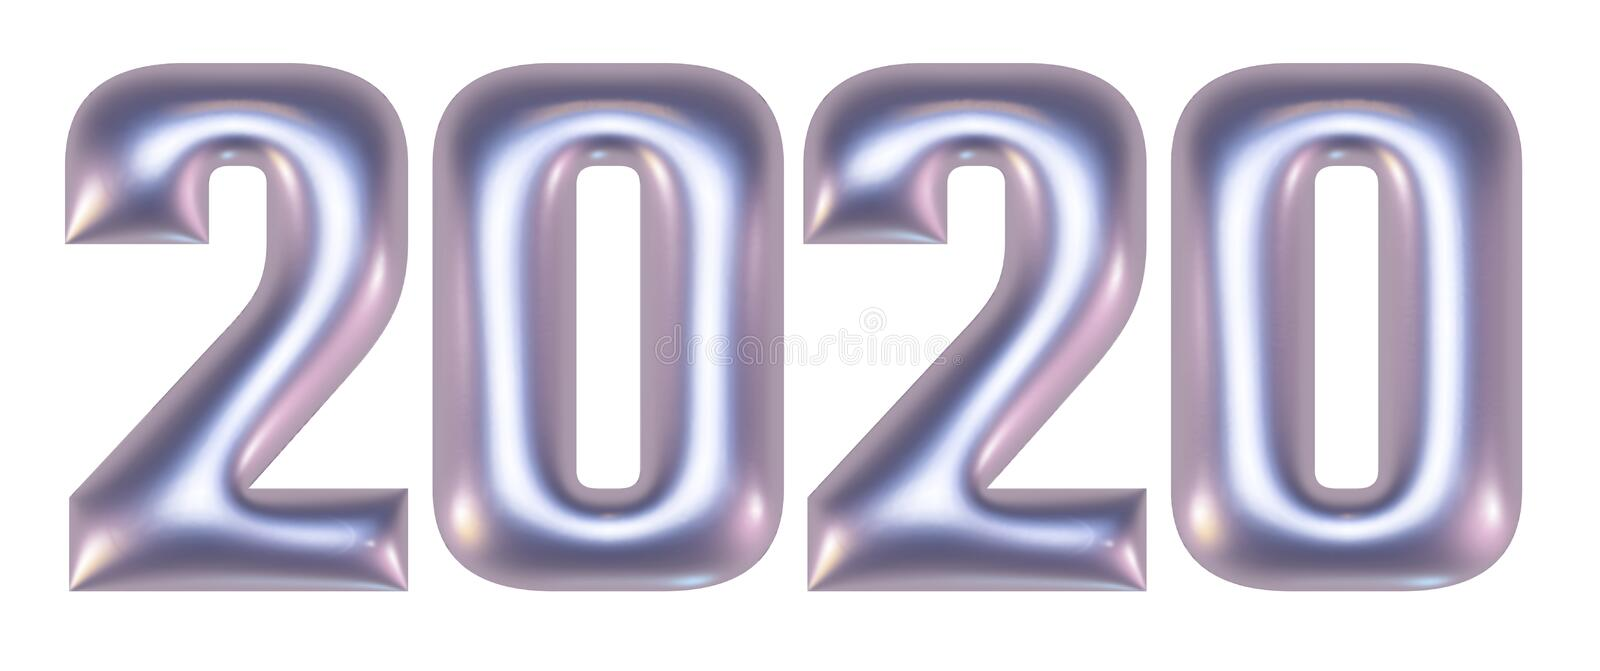 Metallic embossed numbers, alphabet, new year 2020, 3d illustration royalty free stock image